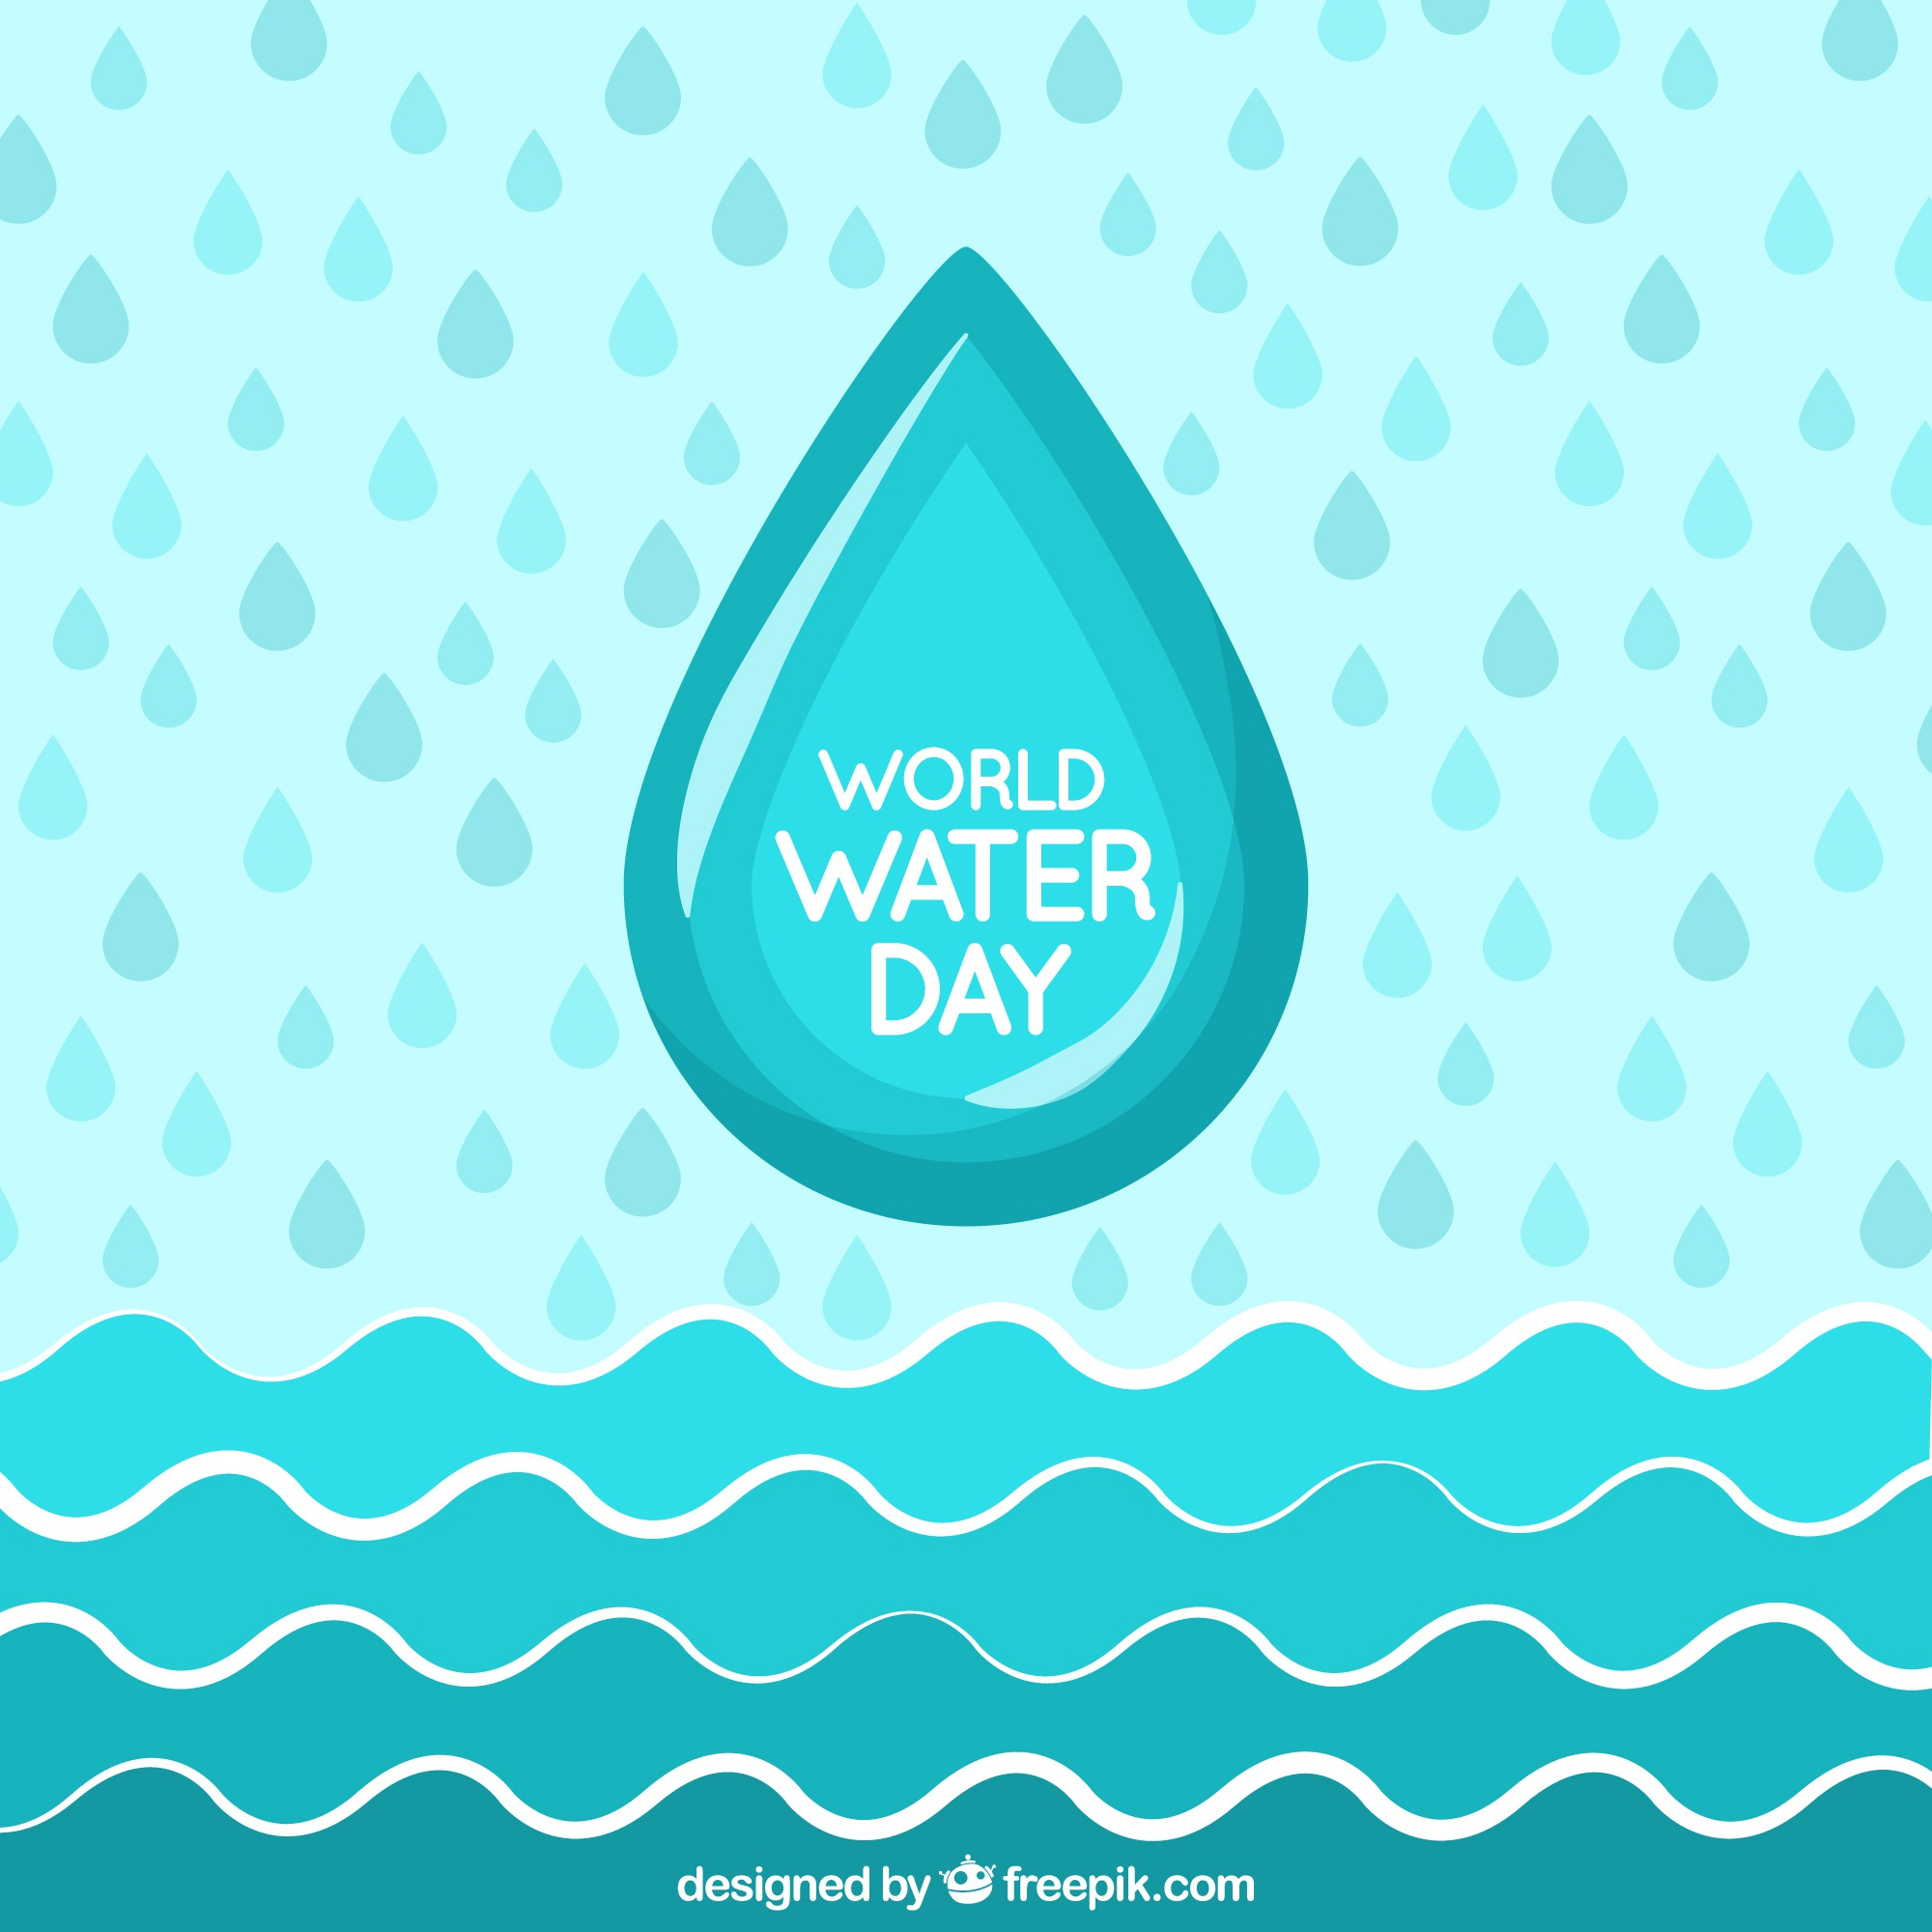 Water day background with waves and drops